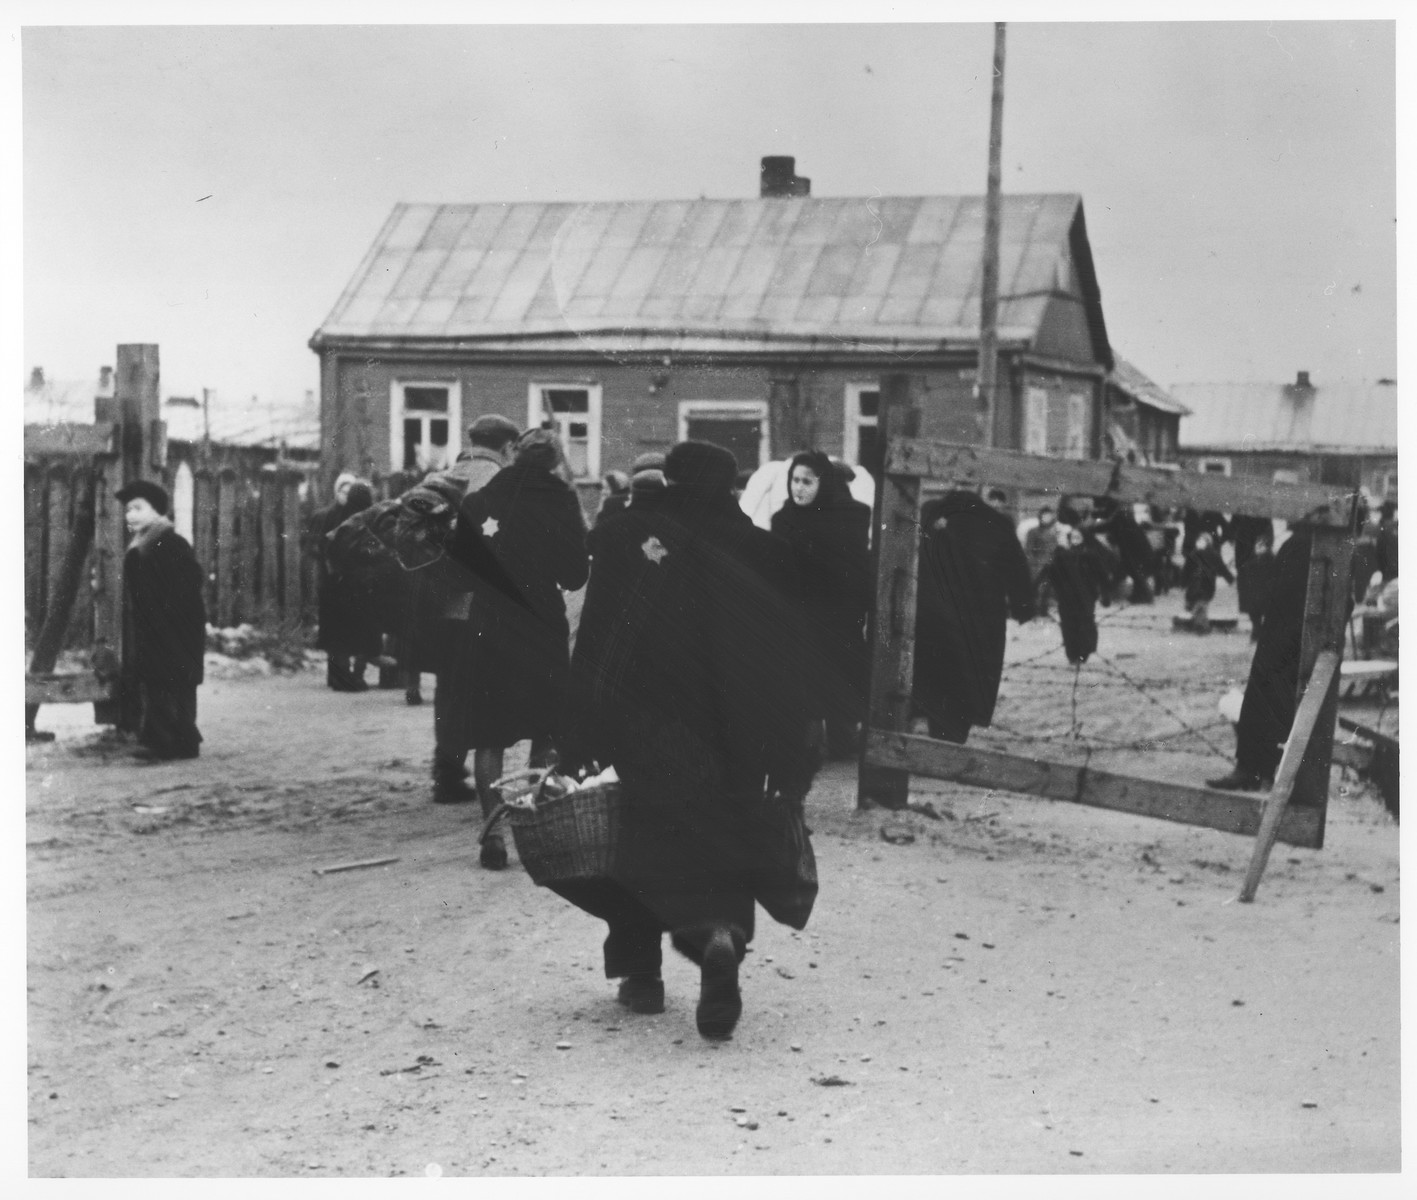 Residents pass in and out of one of the gates to the kovno ghetto.